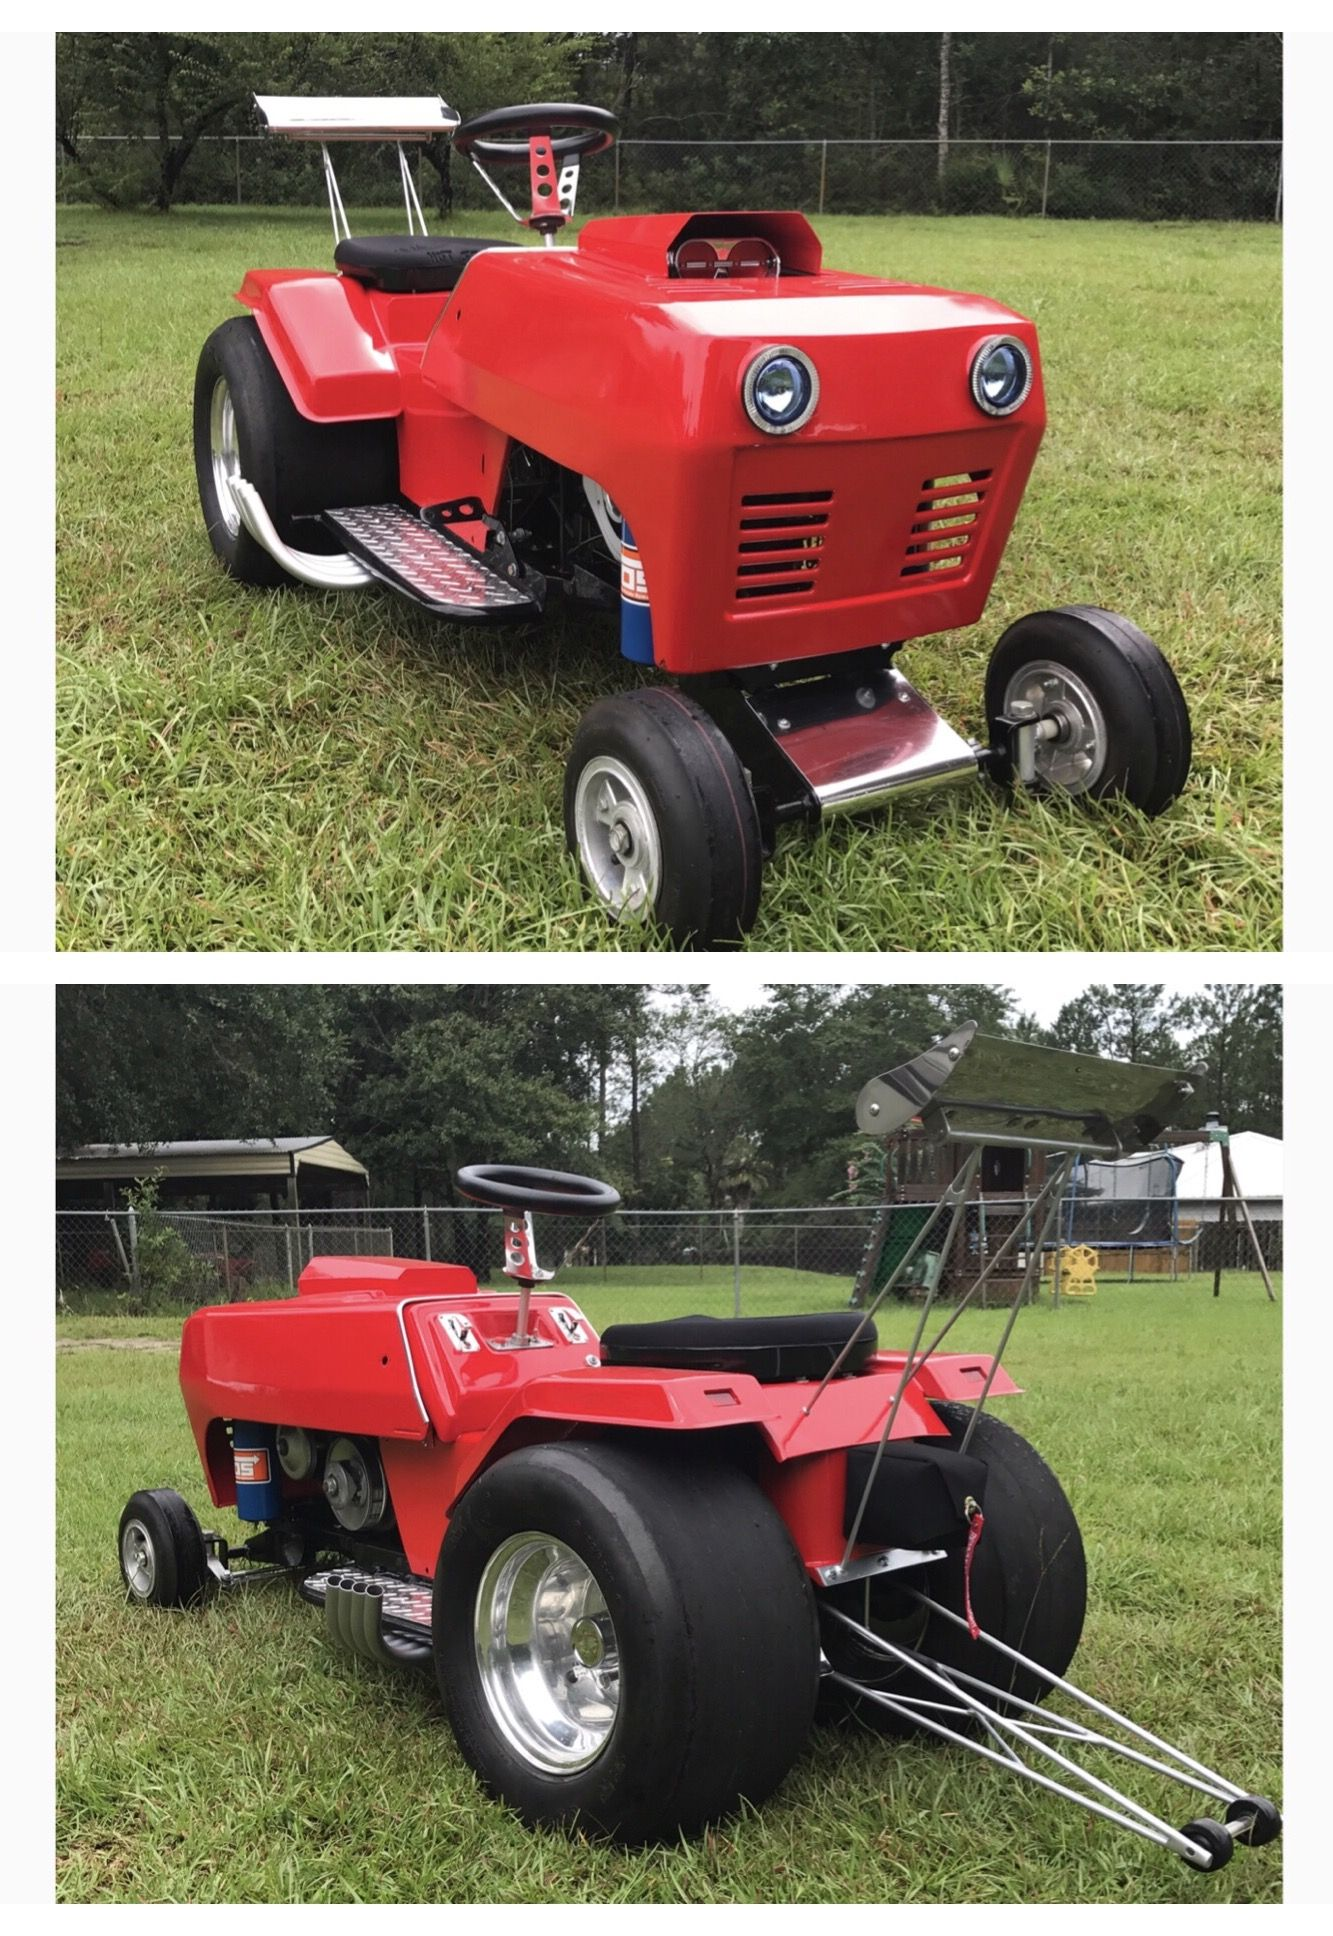 Custom Racing Dragster Lawn Mower powered by a B&S World